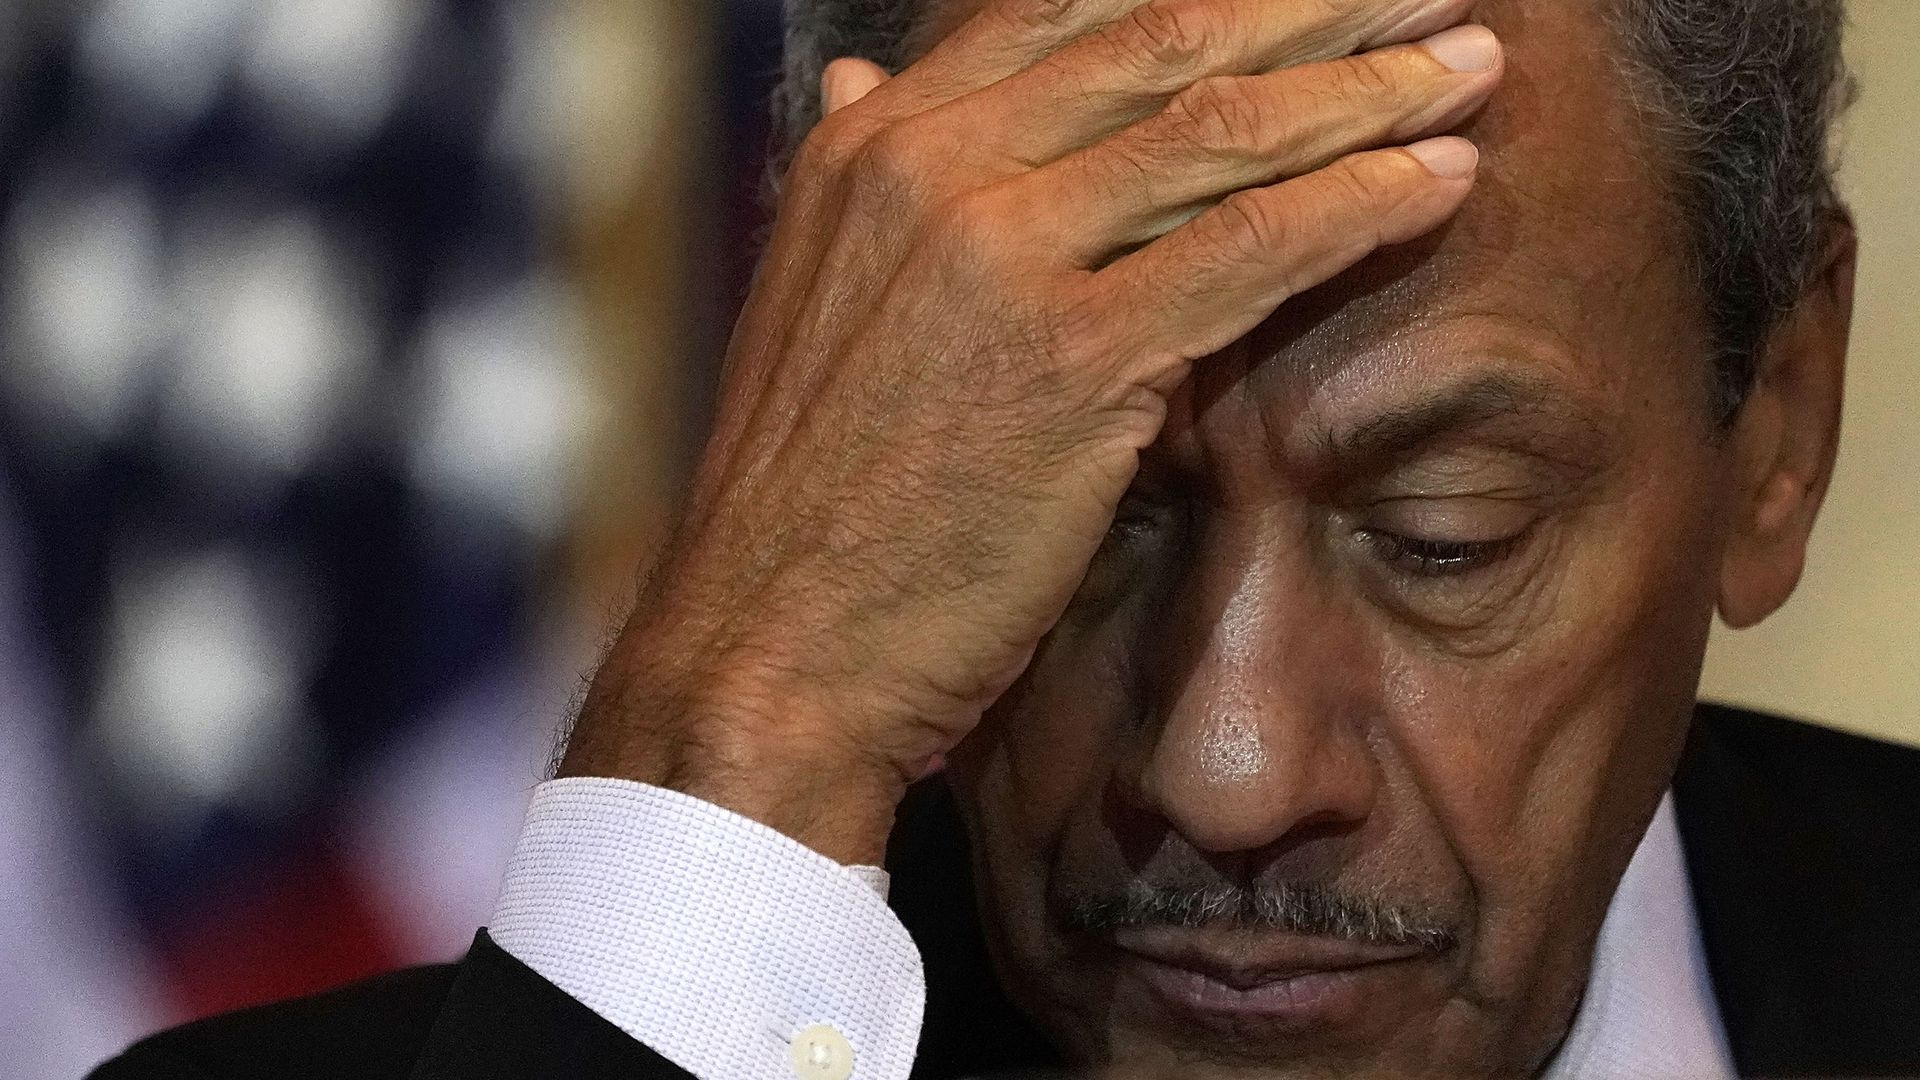 In this image, former congressman Mel Watt looks down and away from the camera, partially covering his face with one hand.